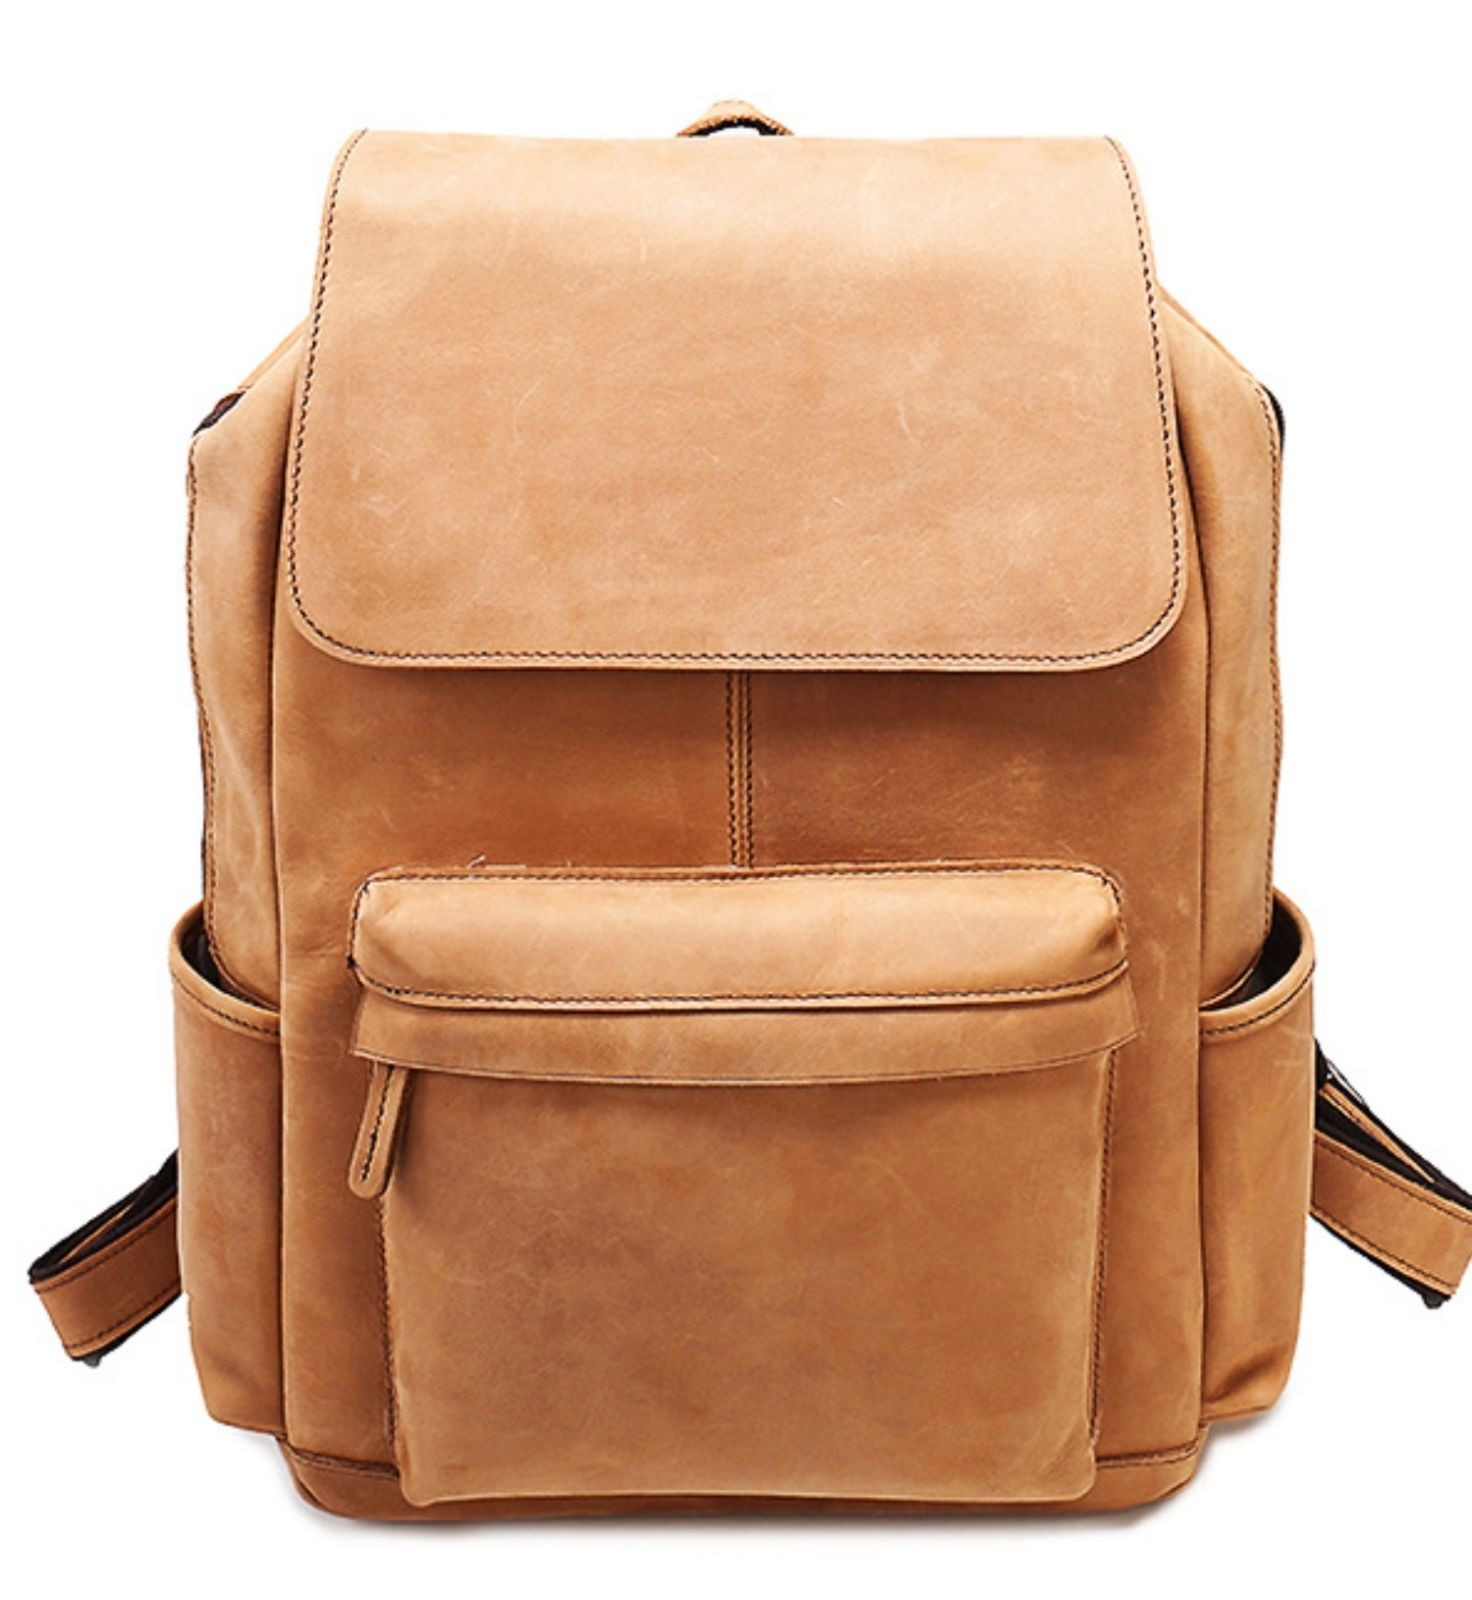 New Tan Crazy Horse Italian Leather Large Backpack Book Bag Man Bag